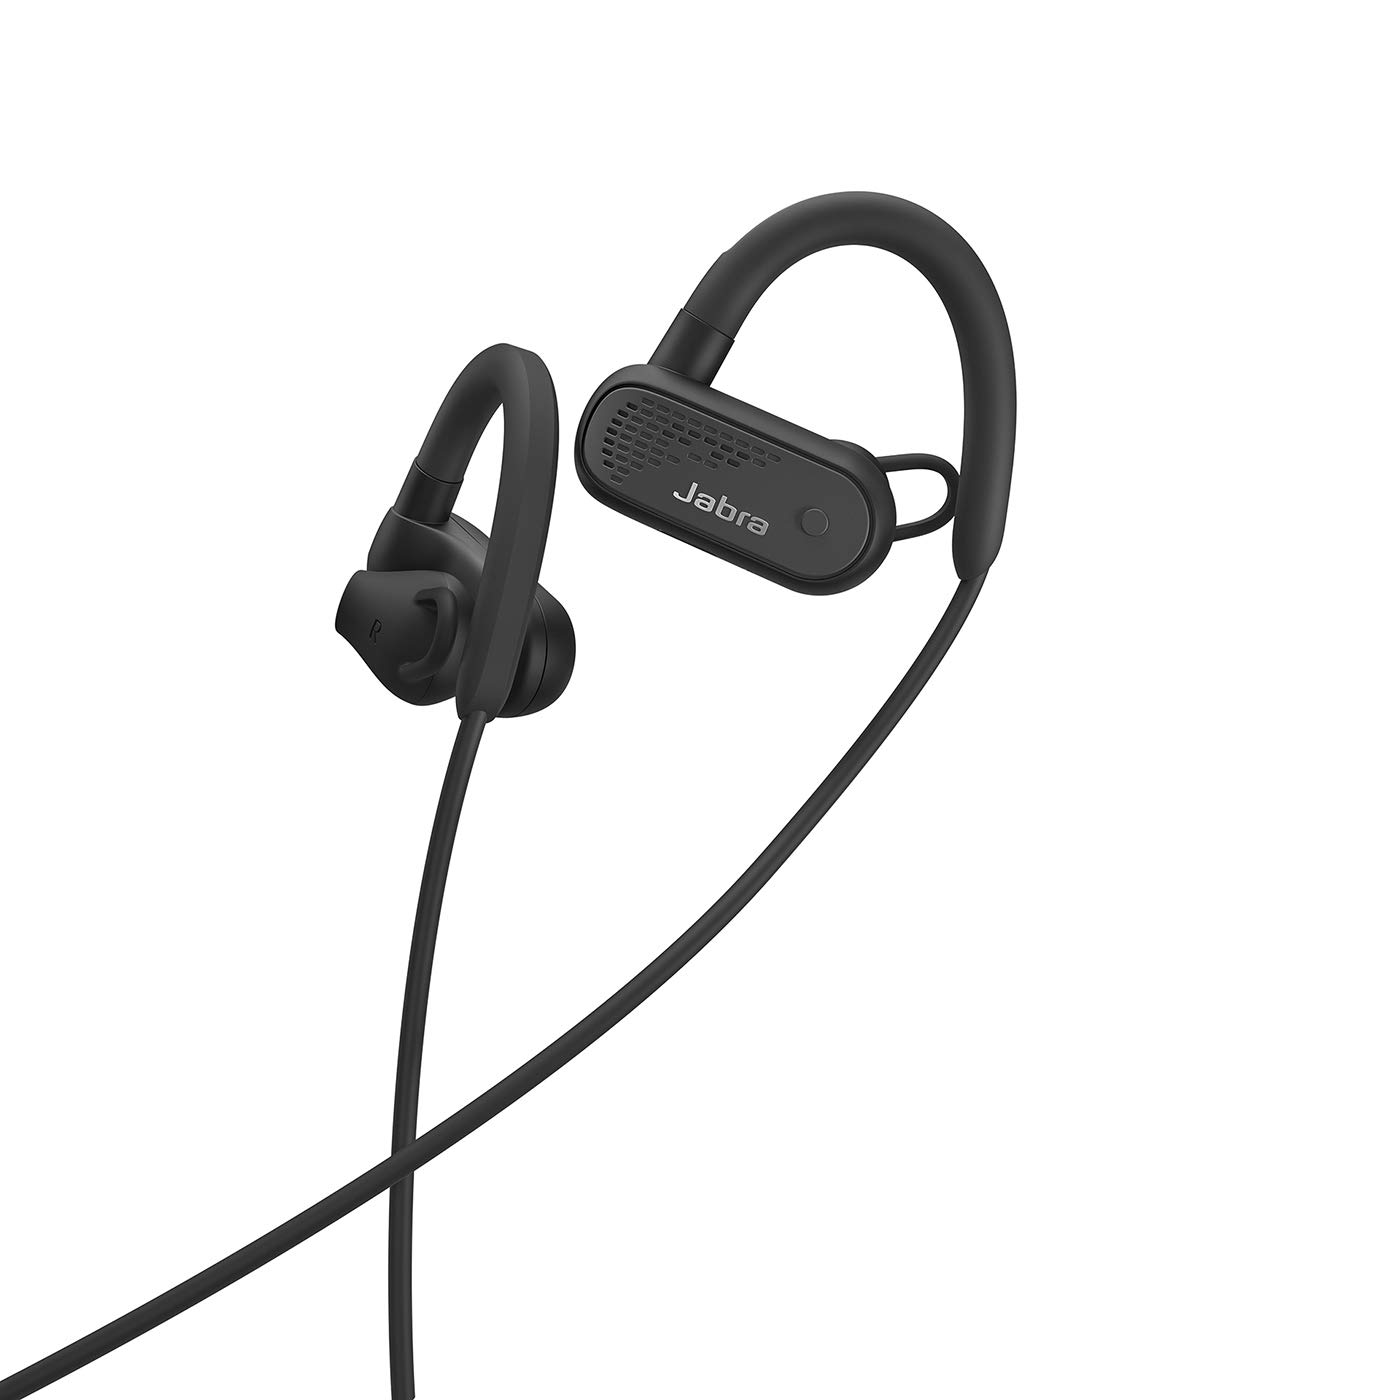 new product 21c10 27df7 Jabra Elite Active 45e - Wireless Sports Earbuds: Amazon.co.uk ...